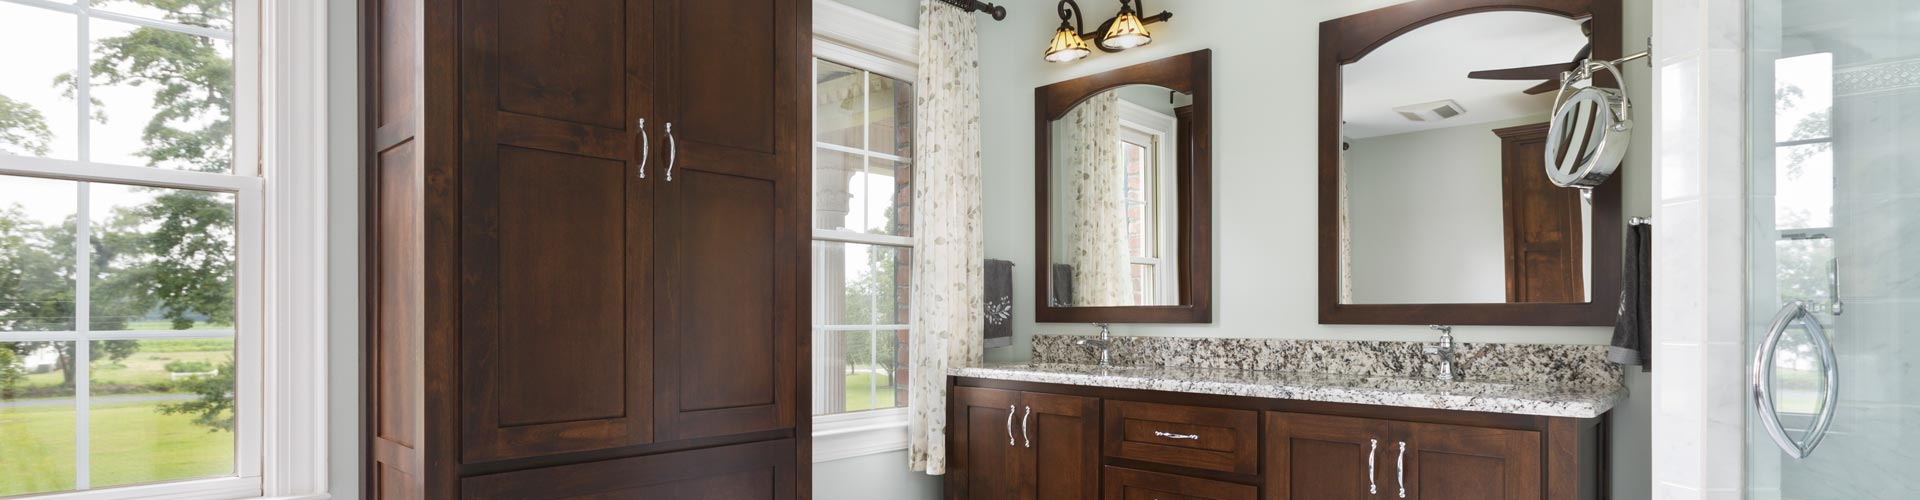 Bathroom Remodeling Wilmington Nc bathroom remodeling wilmington, nc – kitchen & bath of wilmington